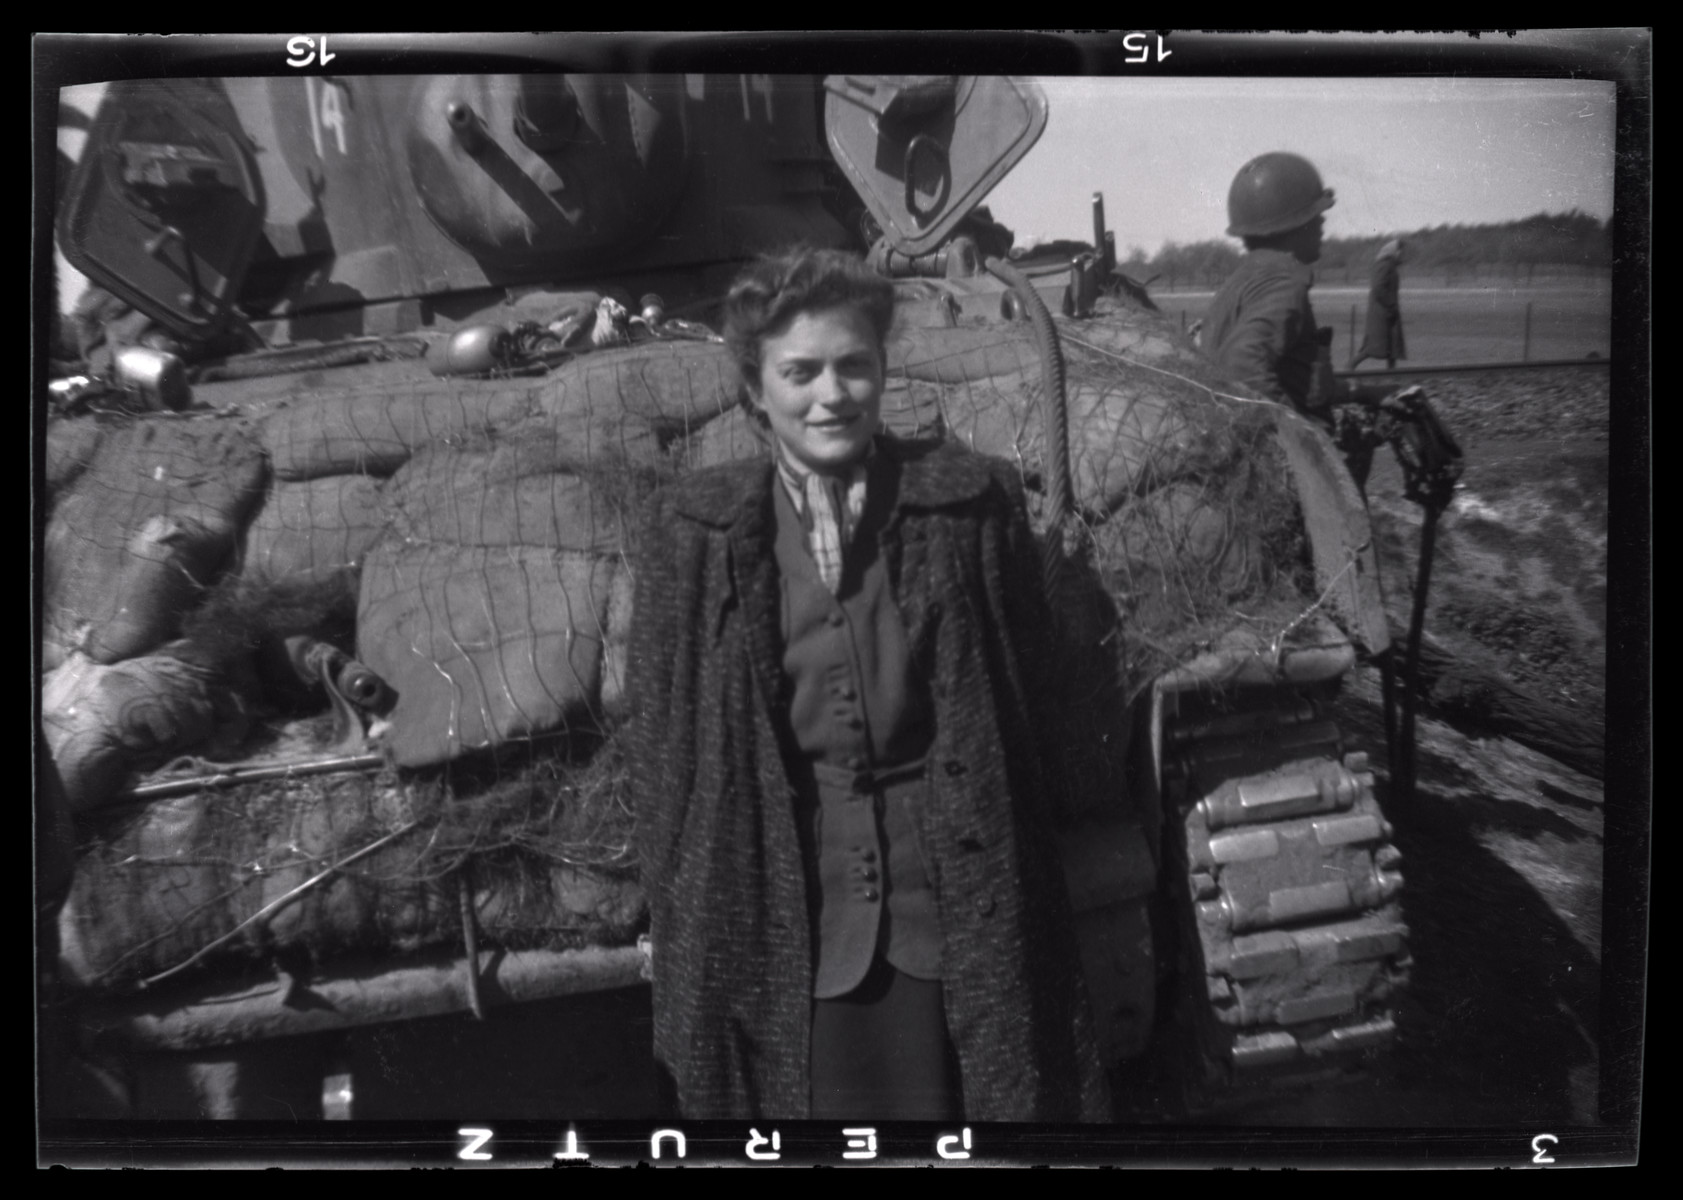 Gina Rappaport (later Leitersdorf) stands next to an American tank shortly after her liberation.  She had survived the Warsaw ghetto prior to her incarceration in Bergen-Belsen.  Fluent in several languages, she translated for the Americans and other survivors of the train.